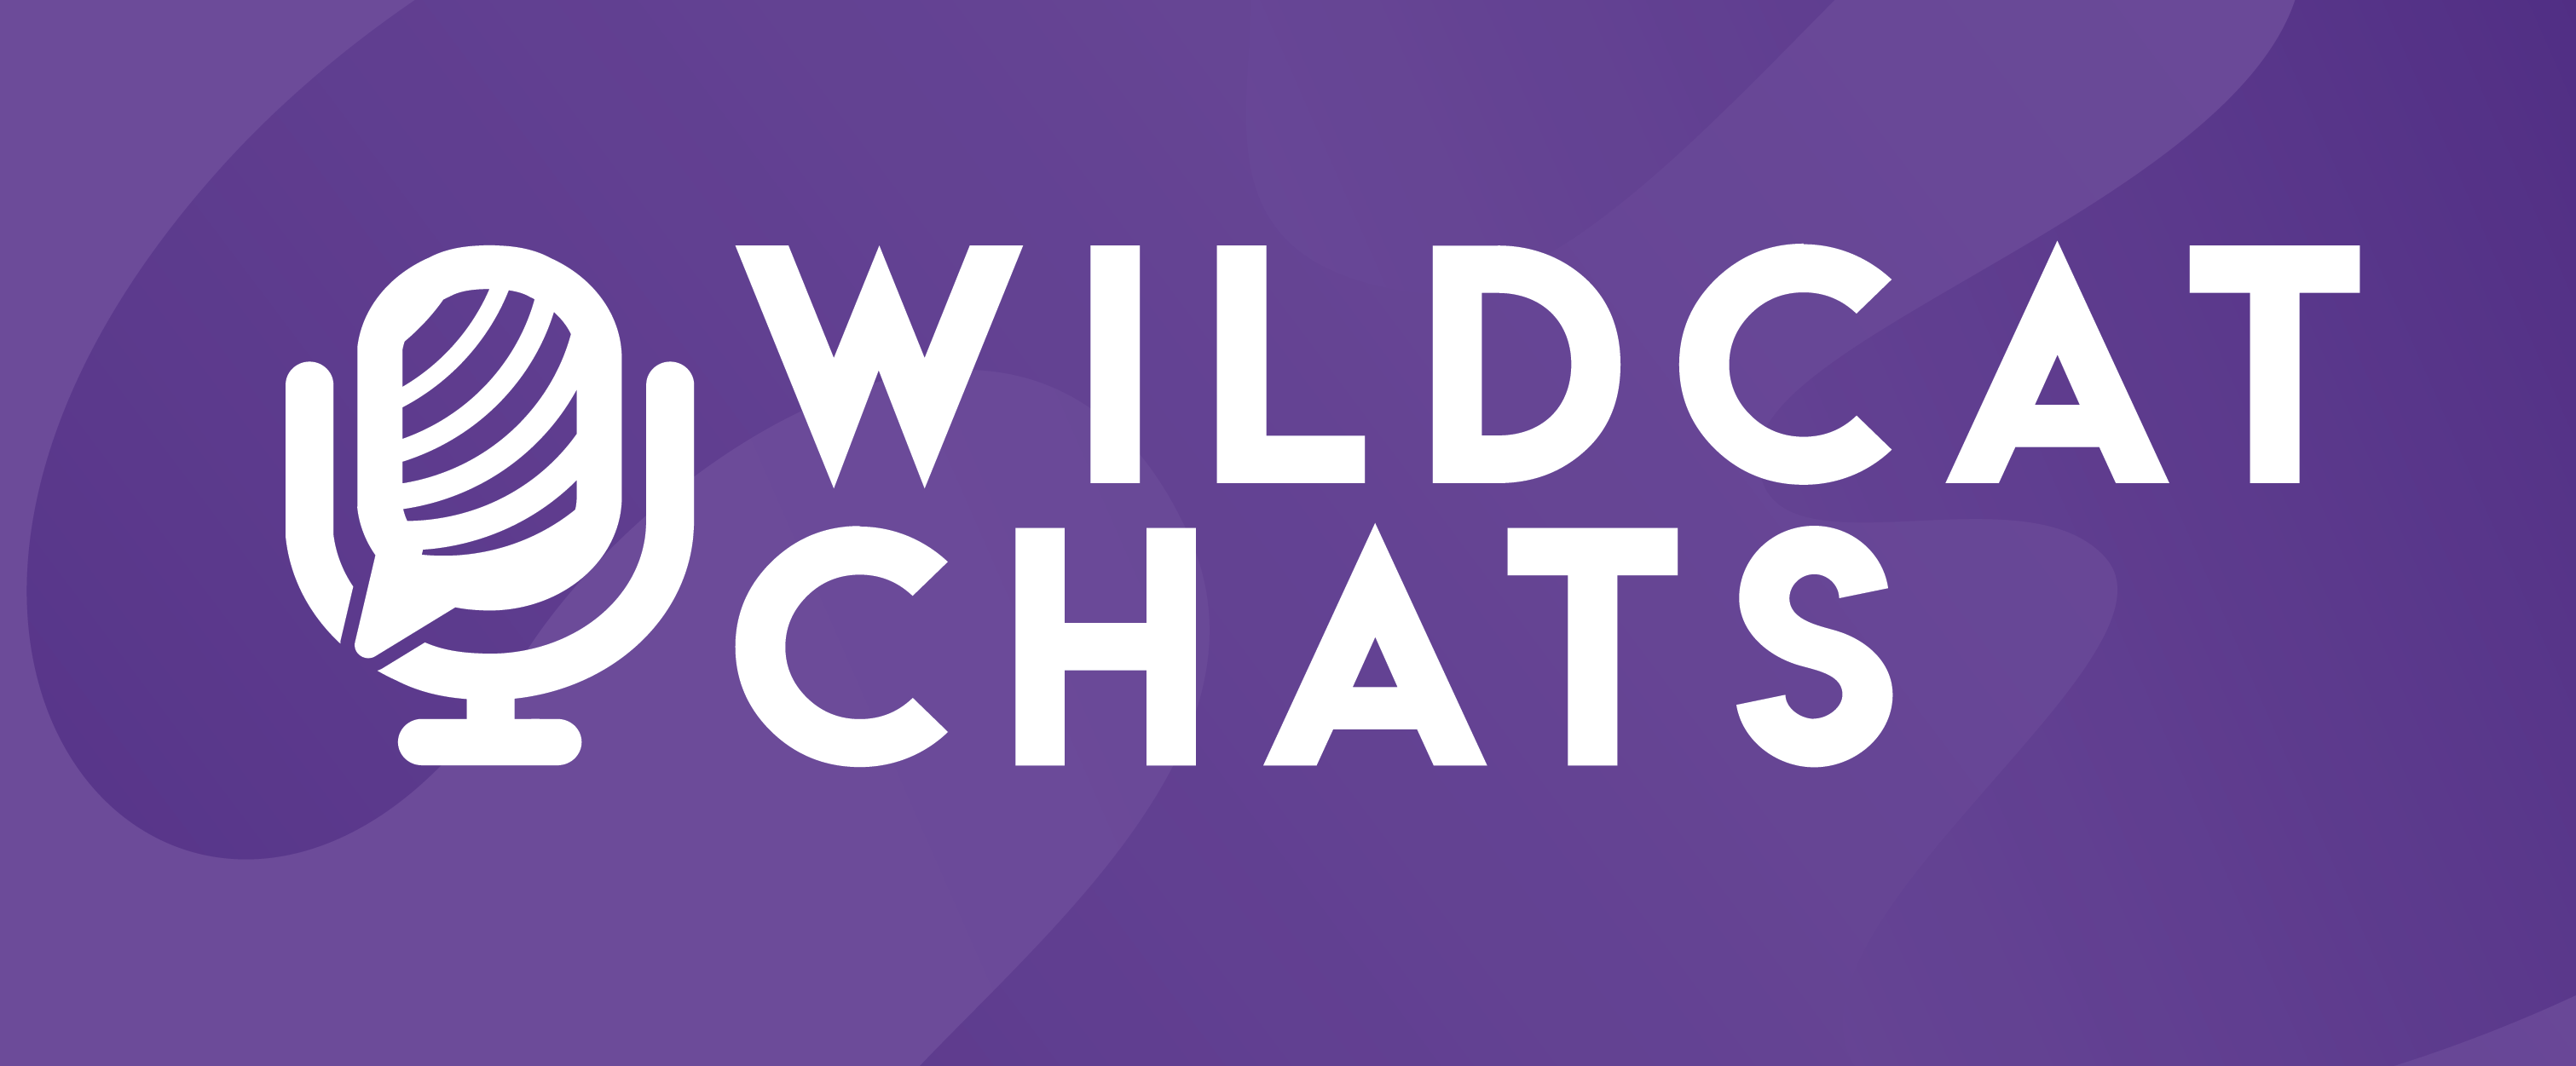 Next Wildcat Chat in series focuses on the lives of K-State students